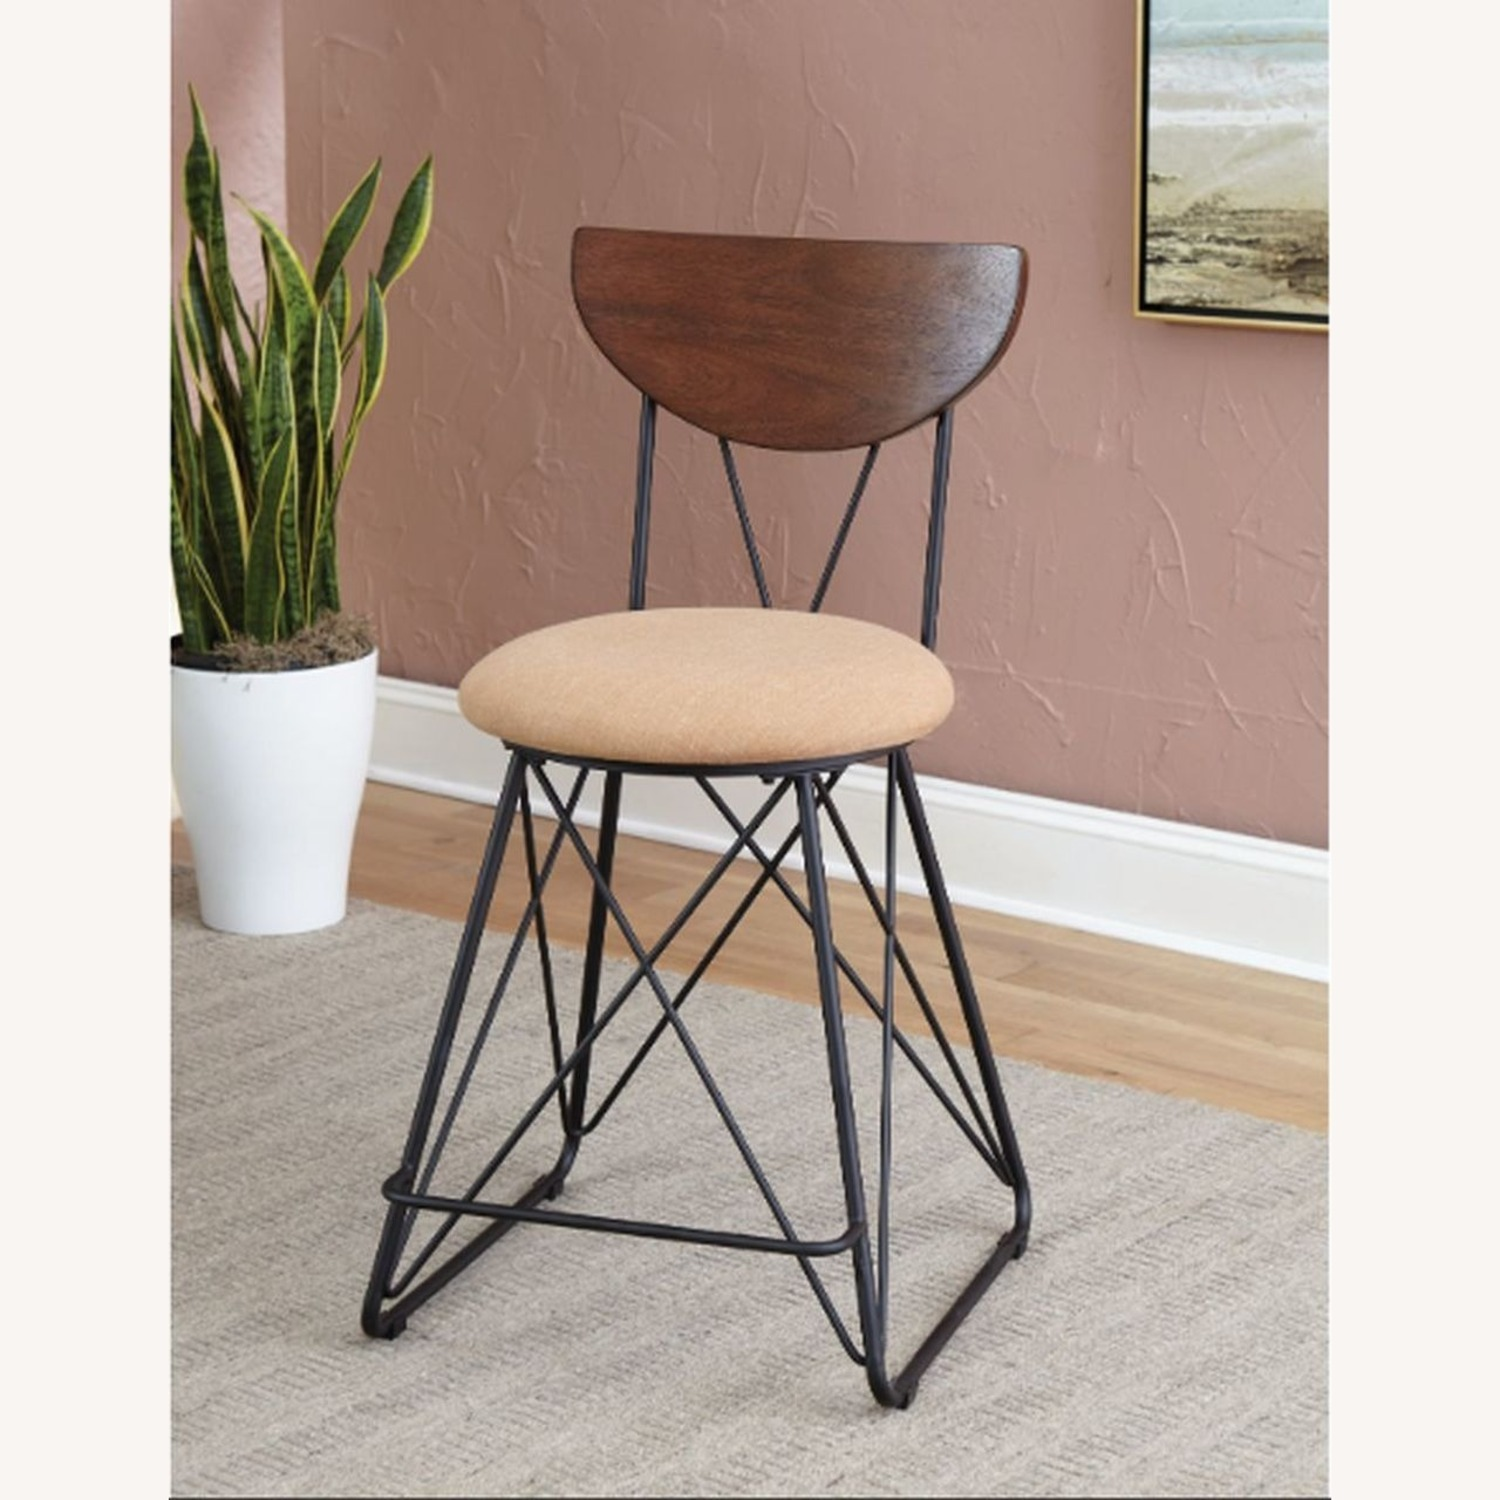 Modern Counter Height Stool In Gold Fabric - image-2